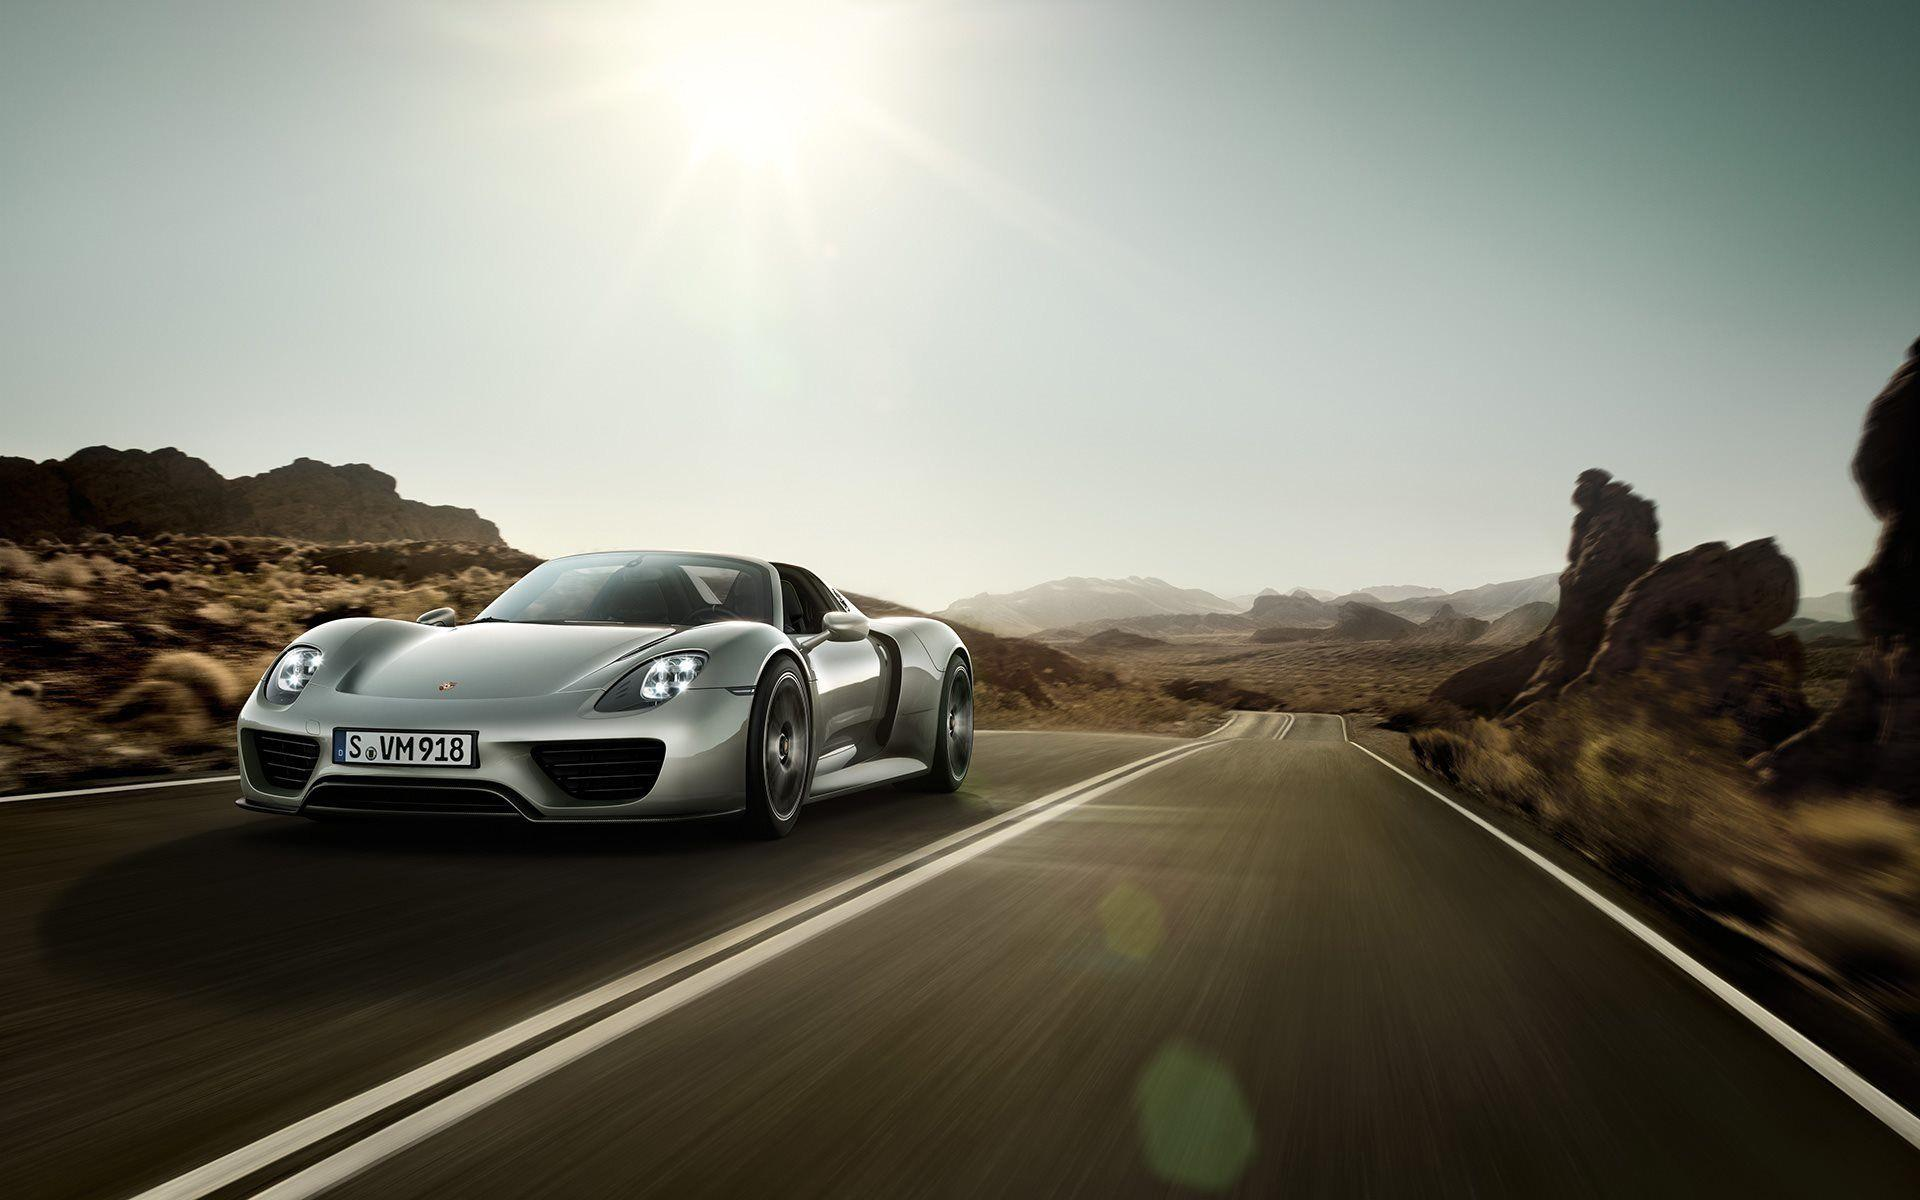 59 Porsche 918 Spyder HD Wallpapers